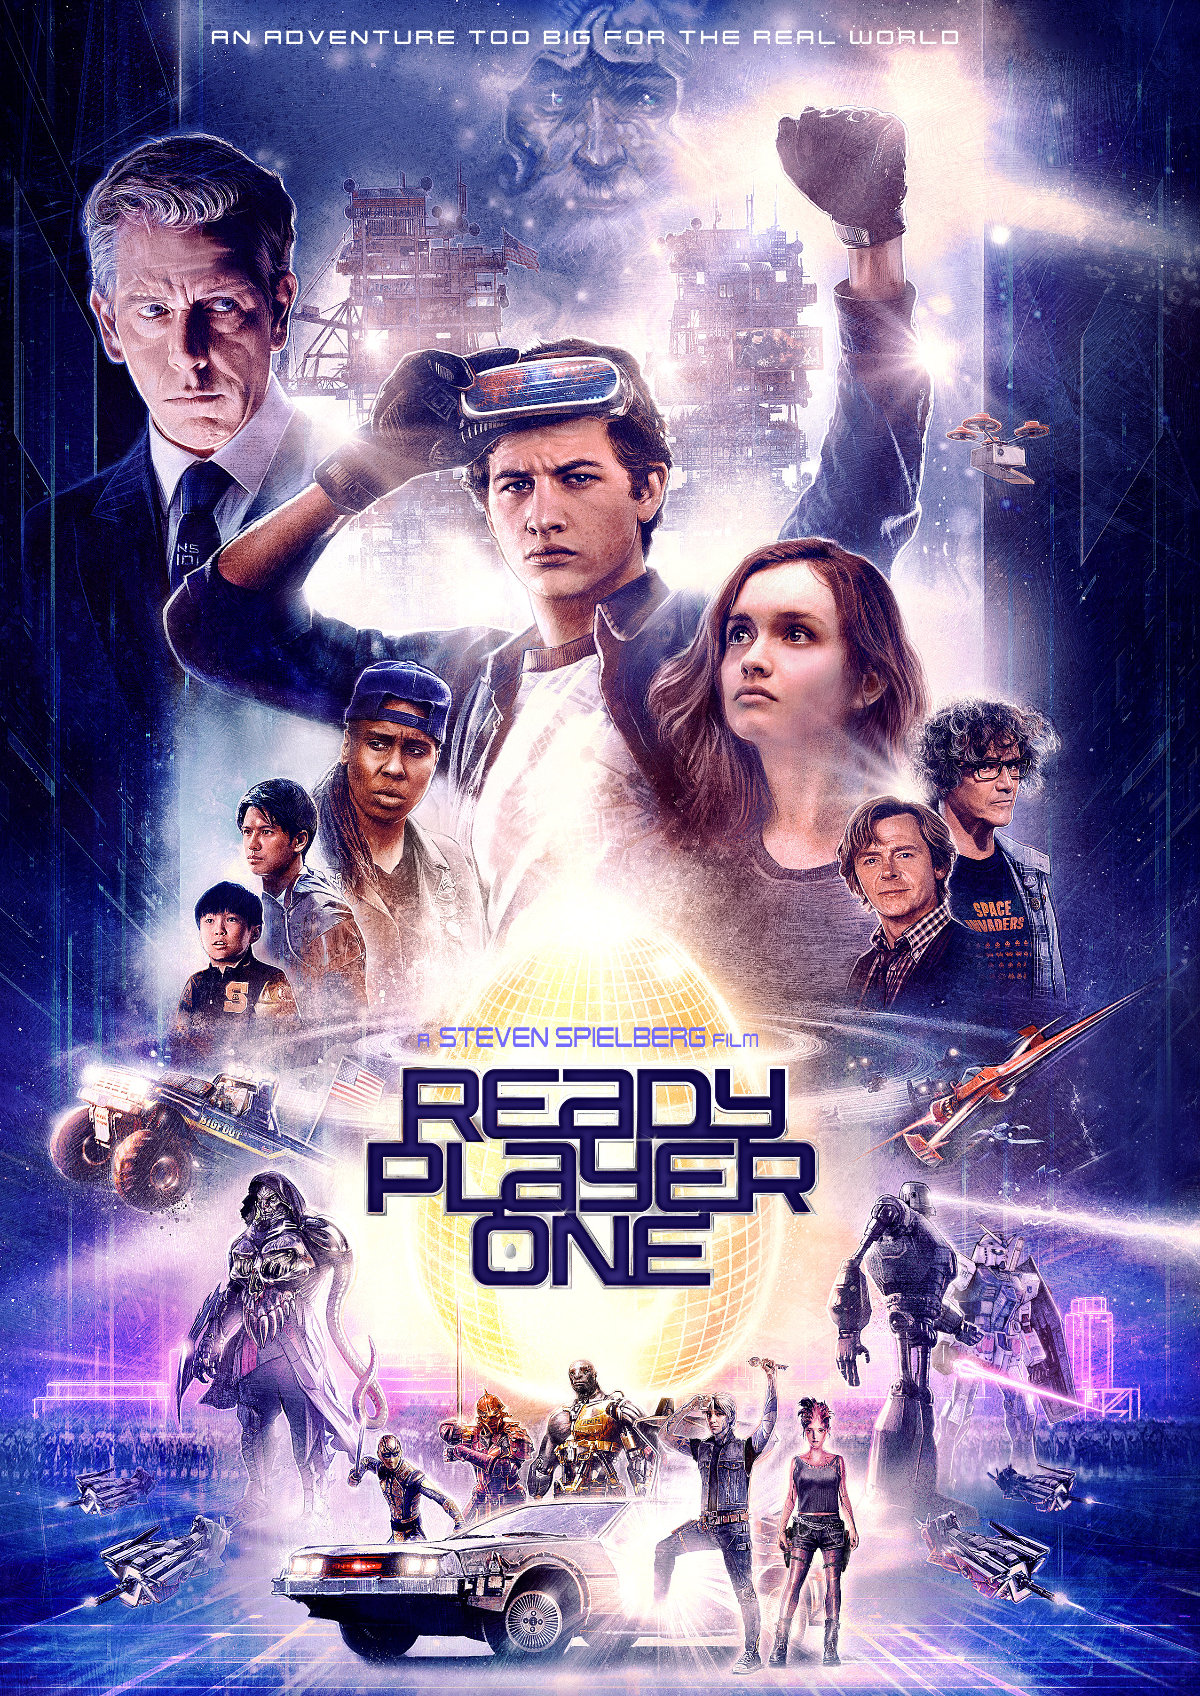 'Ready Player One' movie poster